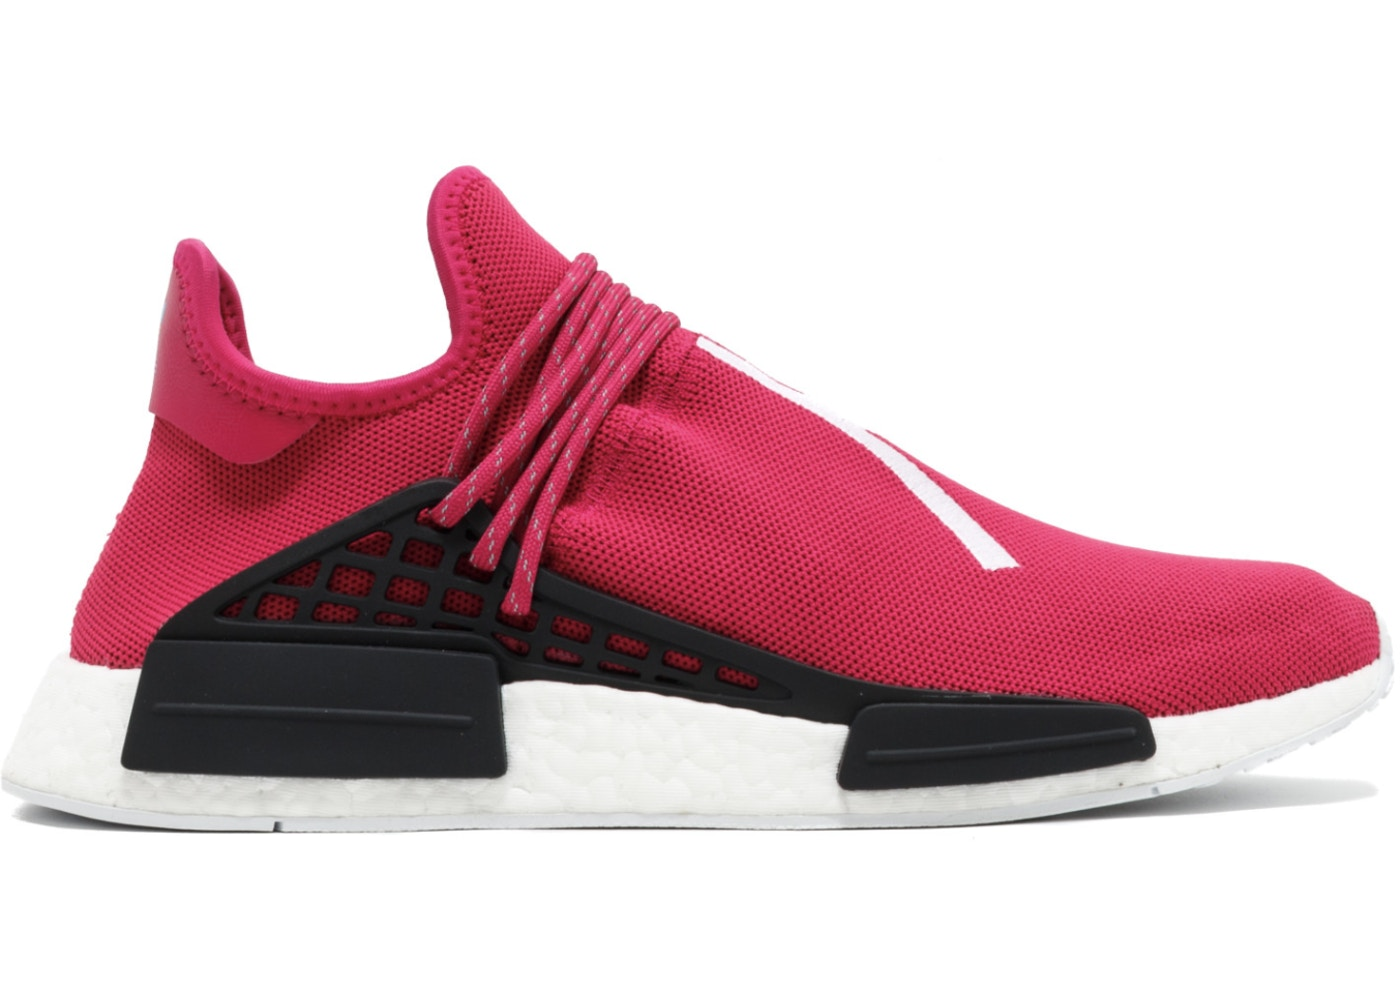 アディダス ADIDAS スニーカー 【 NMD HU PHARRELL FRIENDS AND FAMILY PINK SHOCK CORE BLACK 】 メンズ